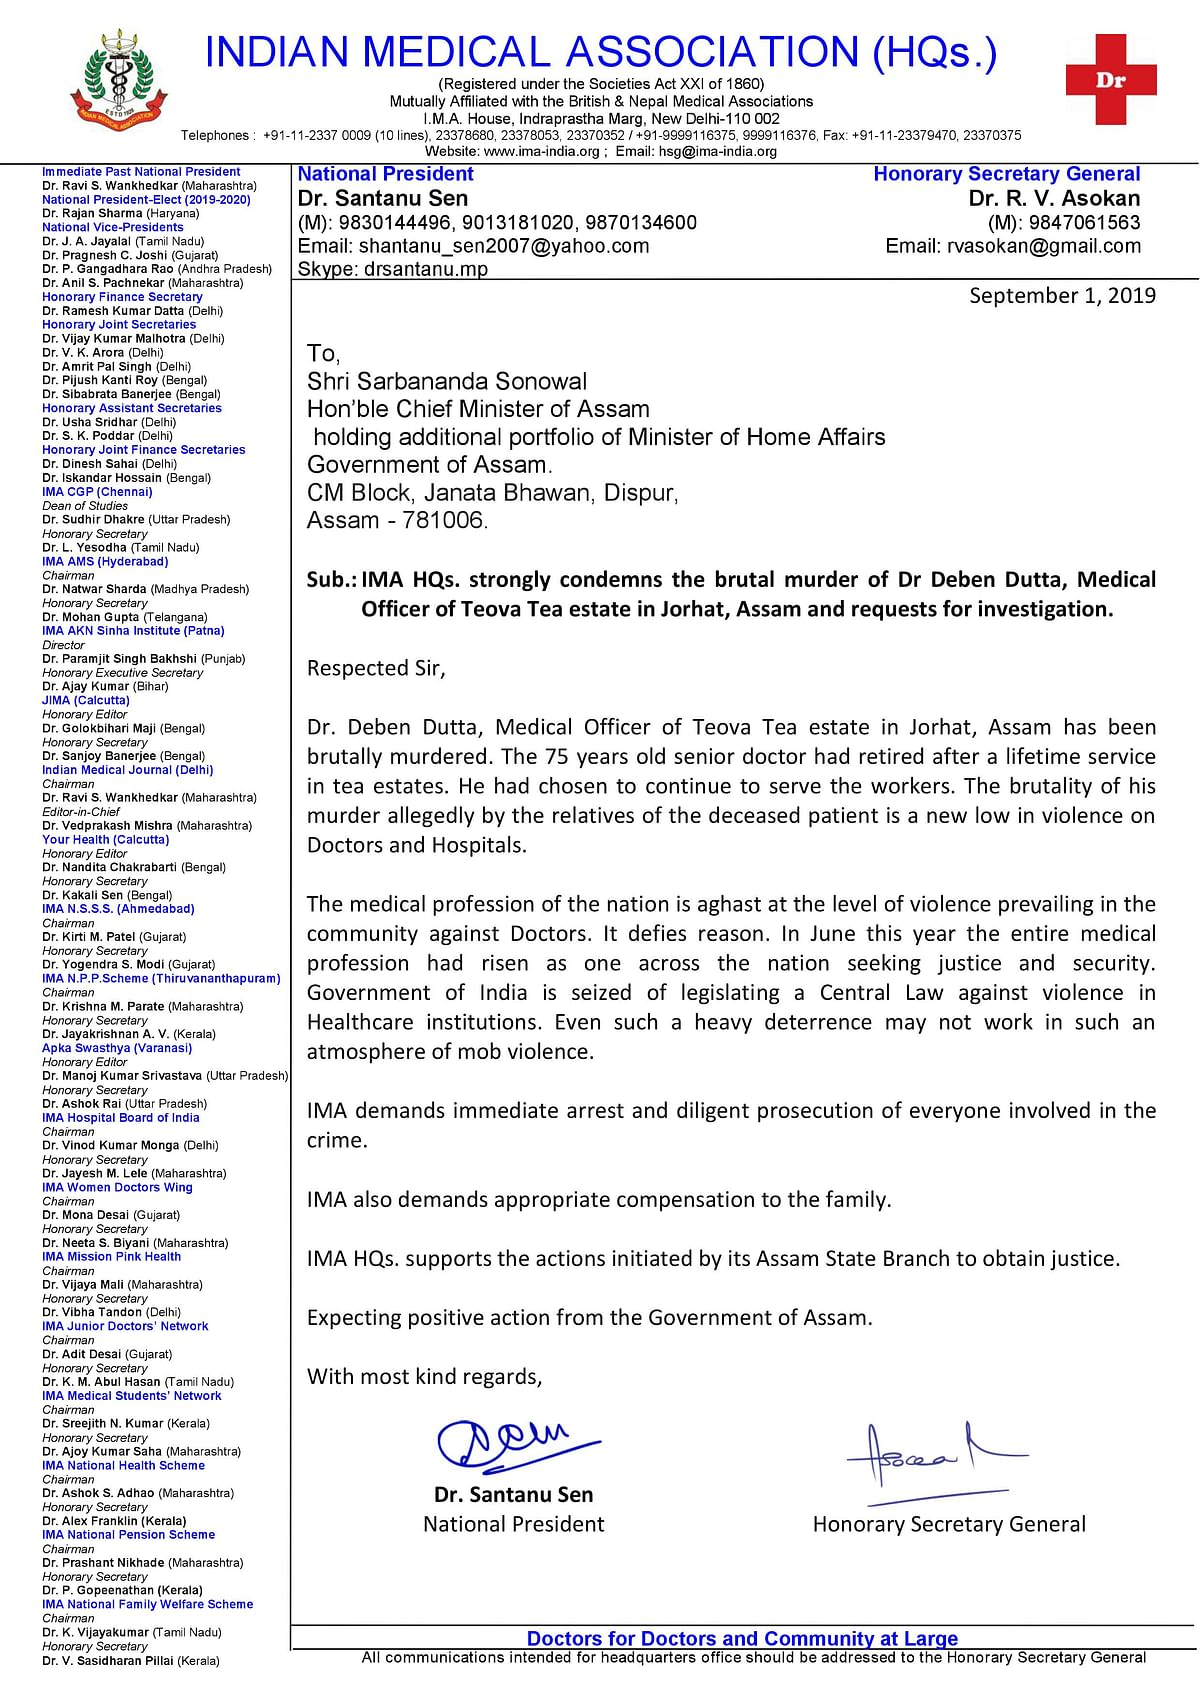 Copy of the letter to chief minister Sarbananda Sonowal